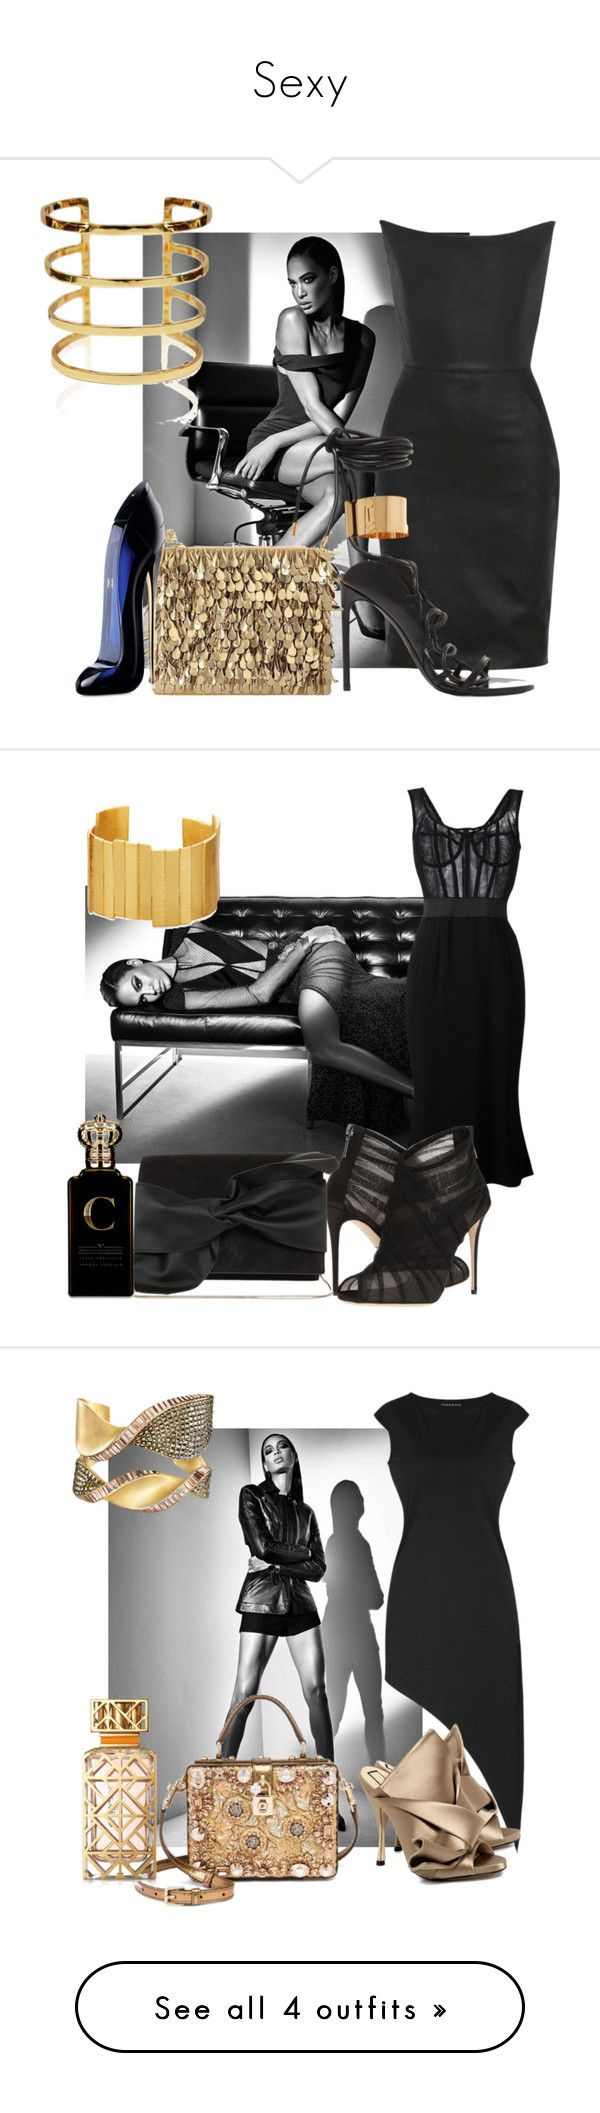 """""""Sexy"""" by sofiacalo ❤ liked on Polyvore featuring Gareth Pugh, Tom Ford, Forest of Chintz, Carolina Herrera, Dolce&Gabbana, Stephanie Kantis, Victoria Beckham, Clive Christian, N°21 and Tory Burch"""